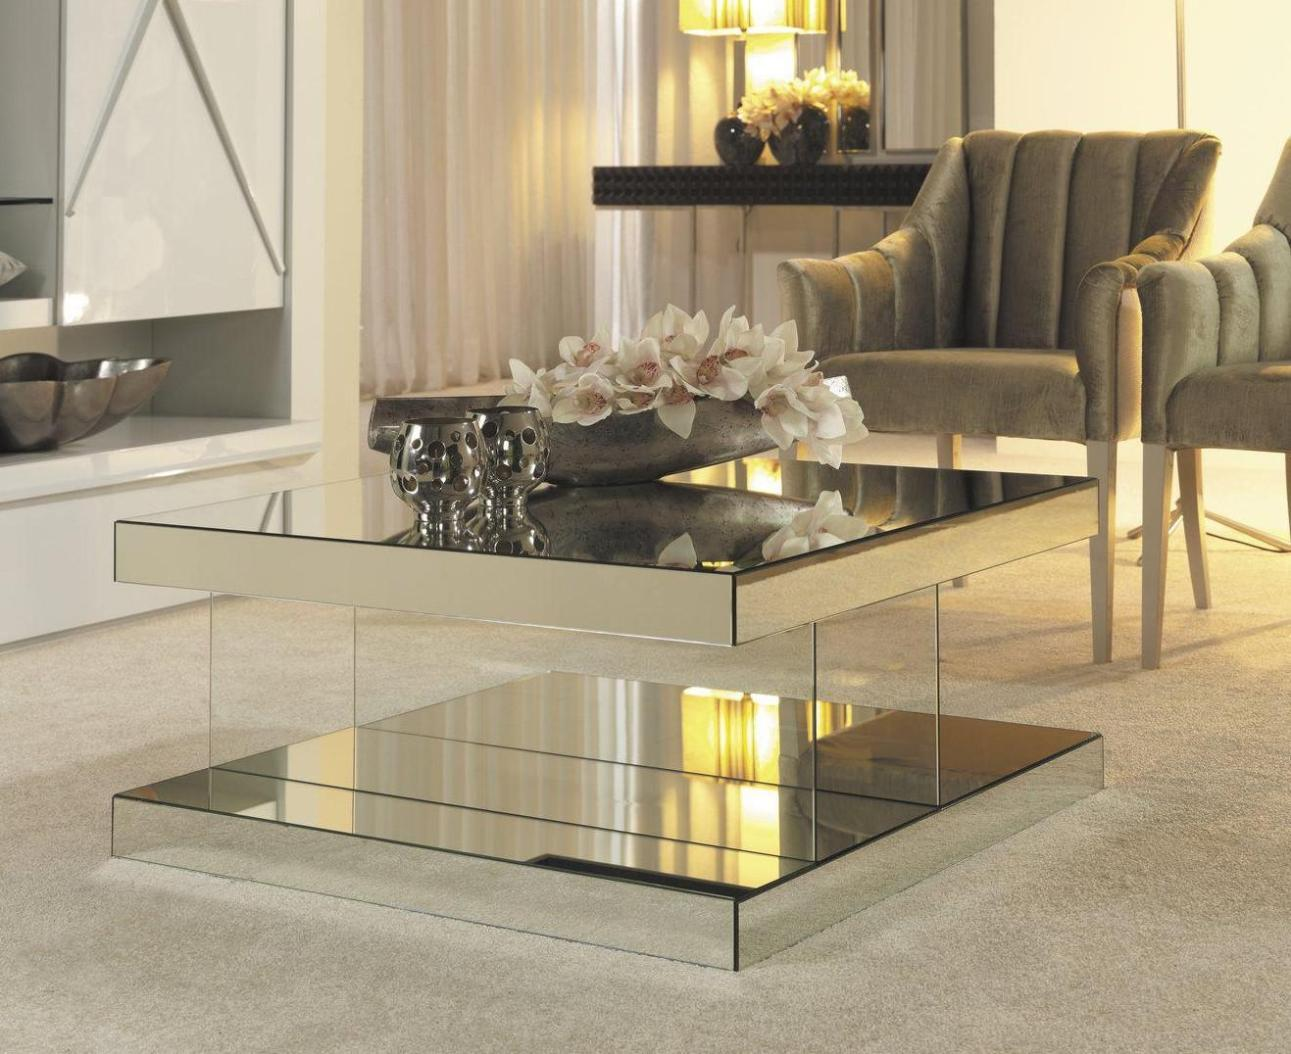 gorgeous mirrored end table target console vanity bedside runner lamps tabletop round hire acrylic seating silver base dining lamp plan decor dressing set tops mirror tray for